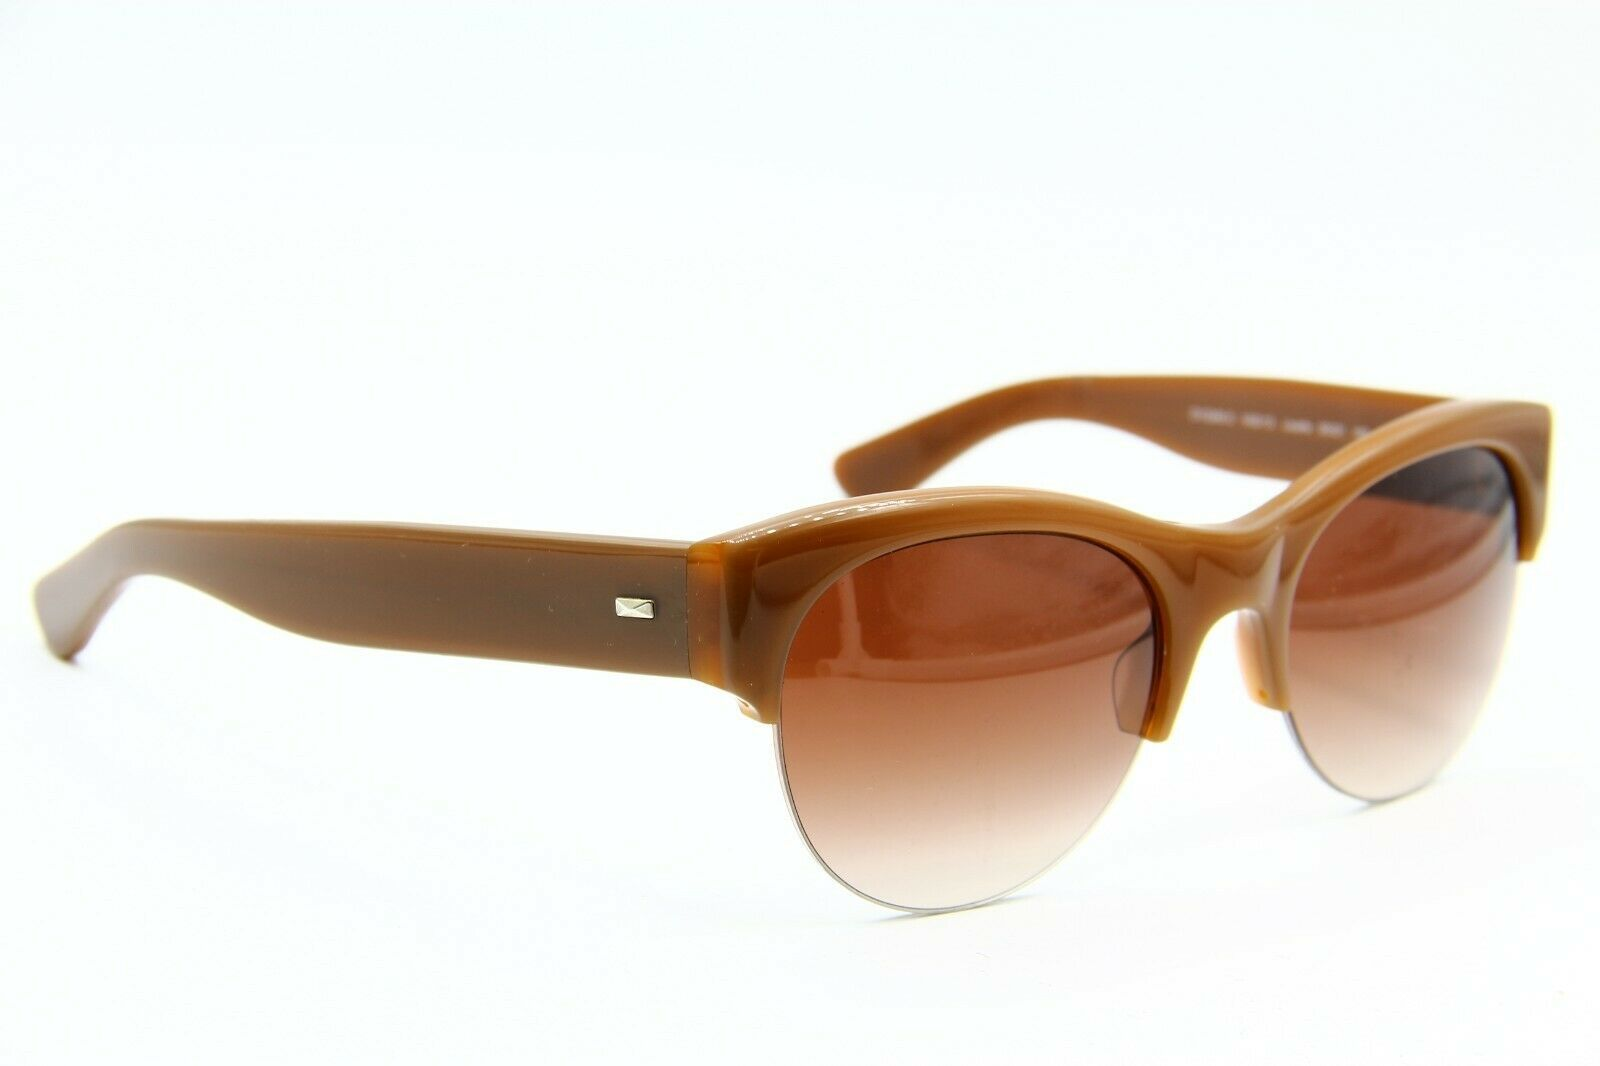 NEW OLIVER PEOPLES OV 5248-S 1402/13 BROWN GRADIENT AUTHENTIC SUNGLASSES 55-21 - $83.40